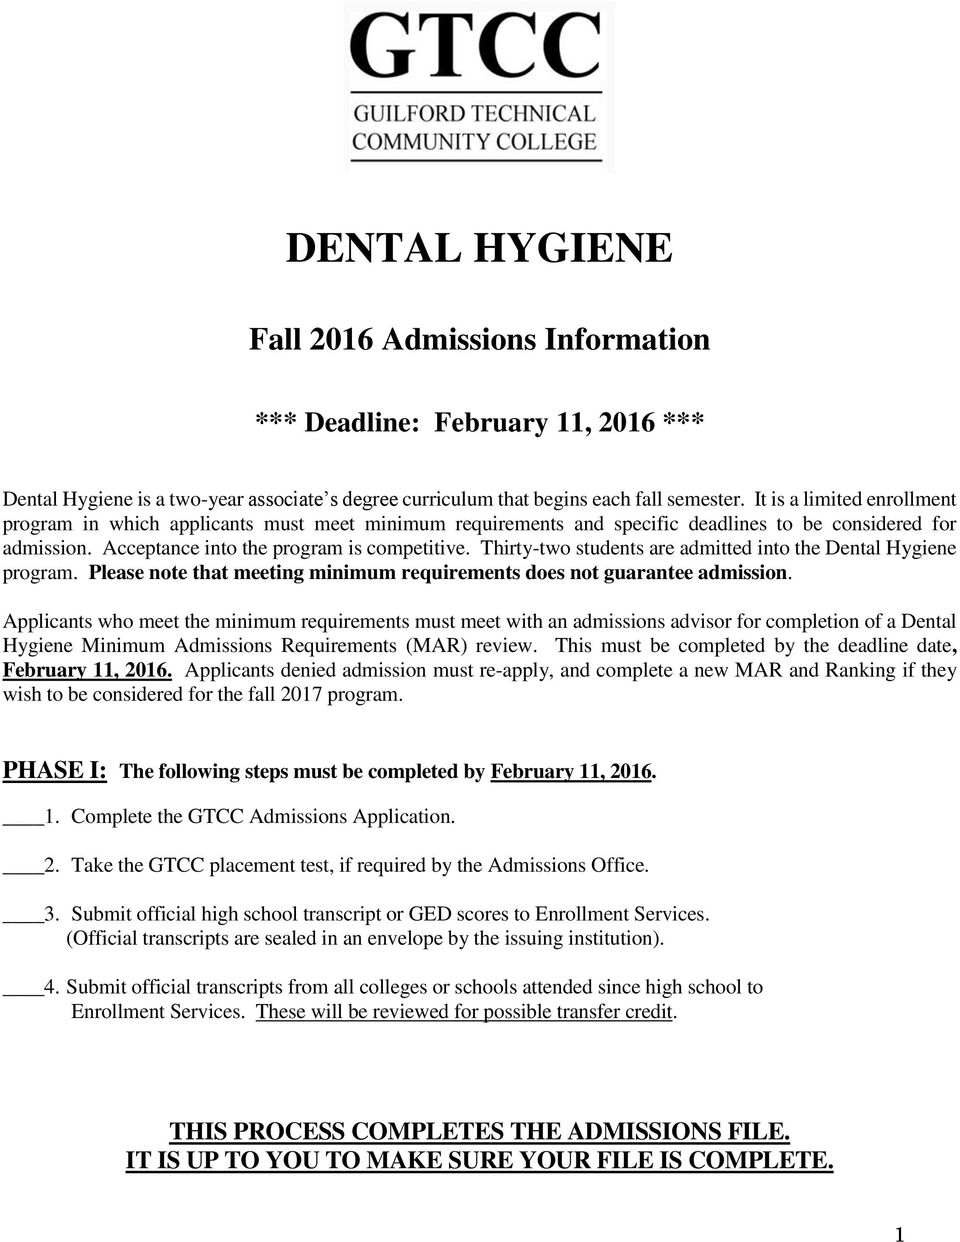 Thirty-two students are admitted into the Dental Hygiene program. Please note that meeting minimum requirements does not guarantee admission.